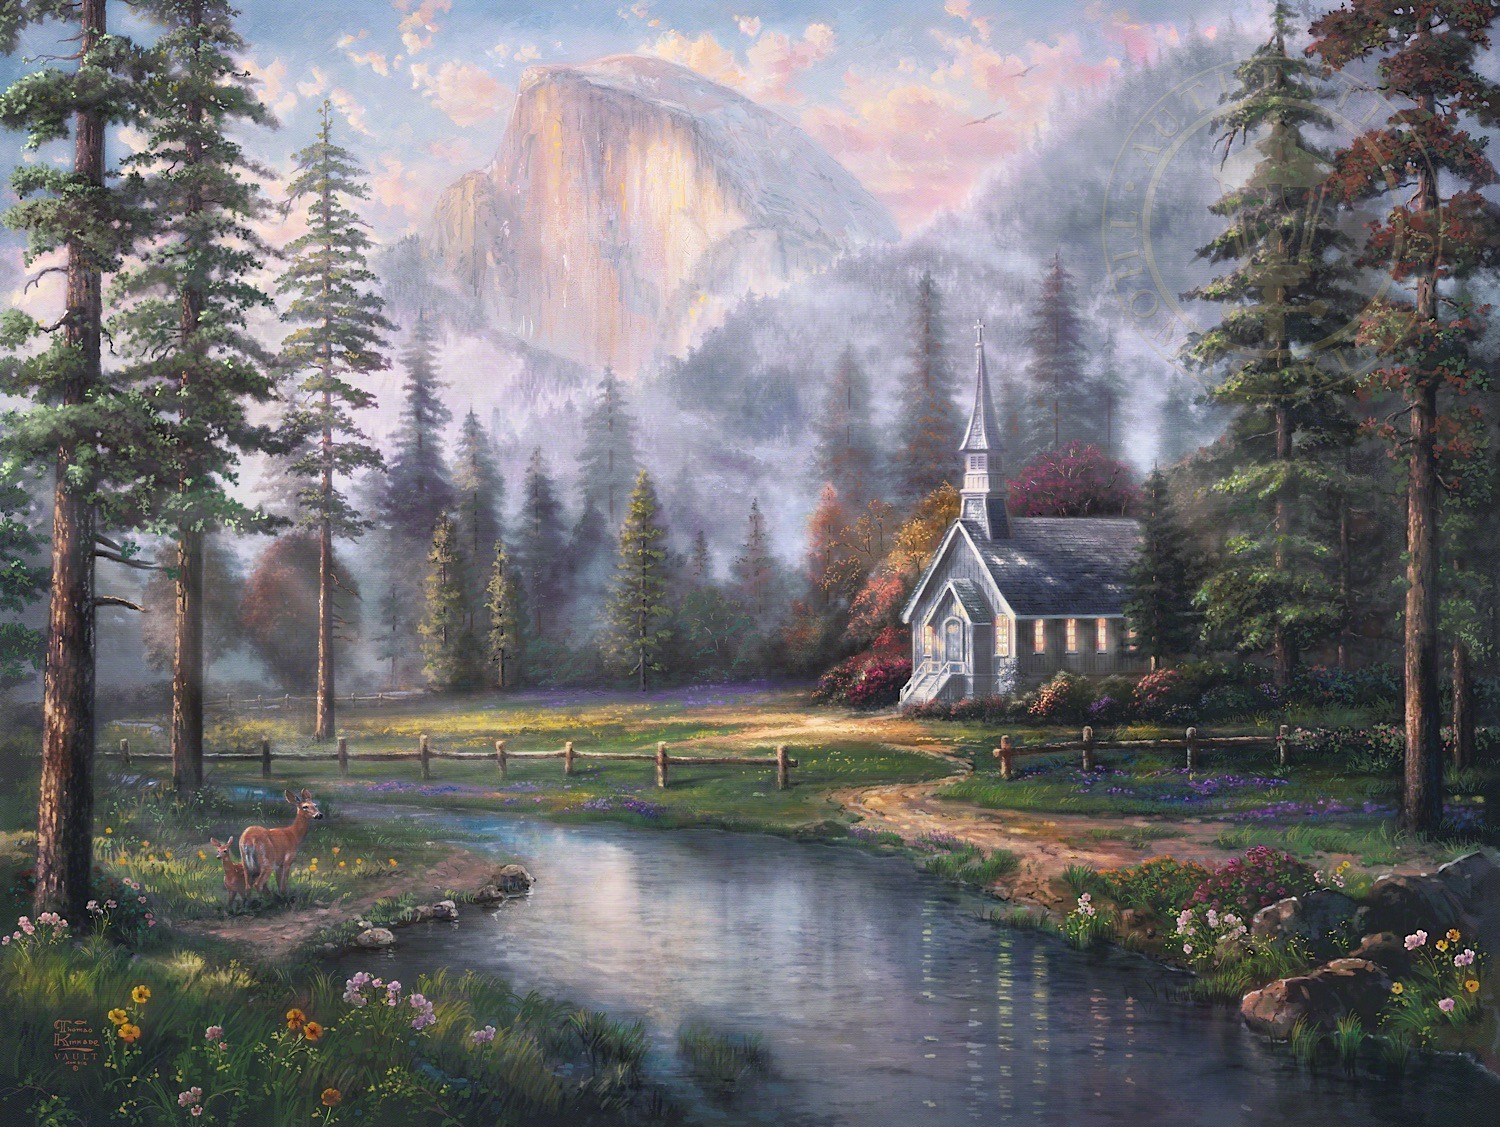 3d Art Street Wallpapers The Thomas Kinkade Company Announces The Release Of